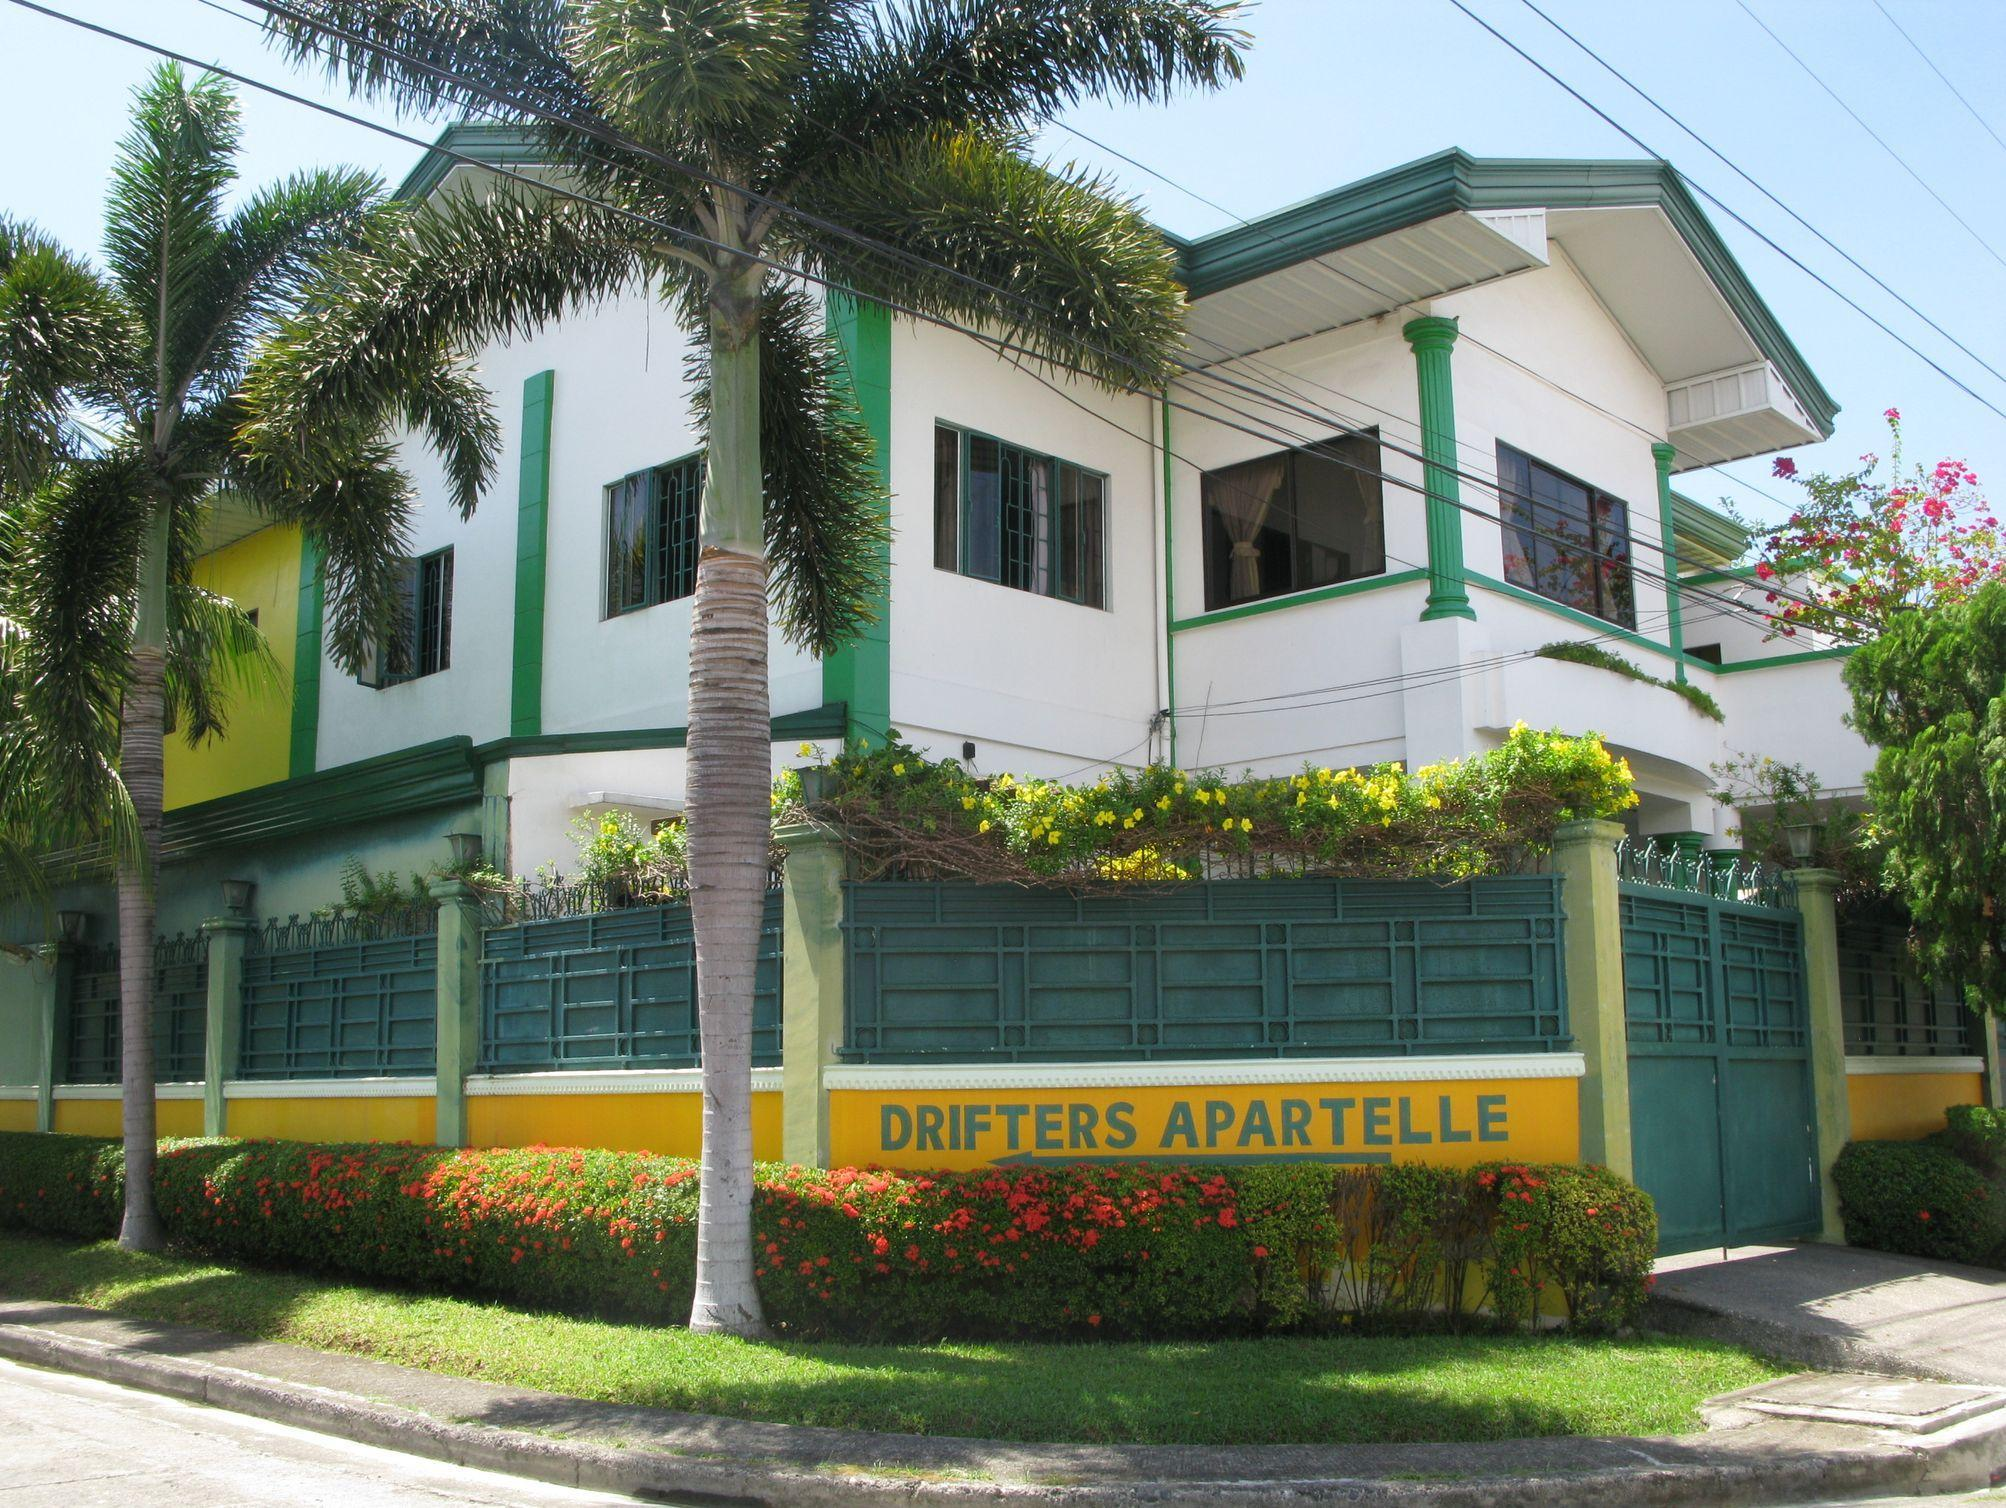 Drifters british pub apartelle lanang davao city - Apartelle in davao city with swimming pool ...